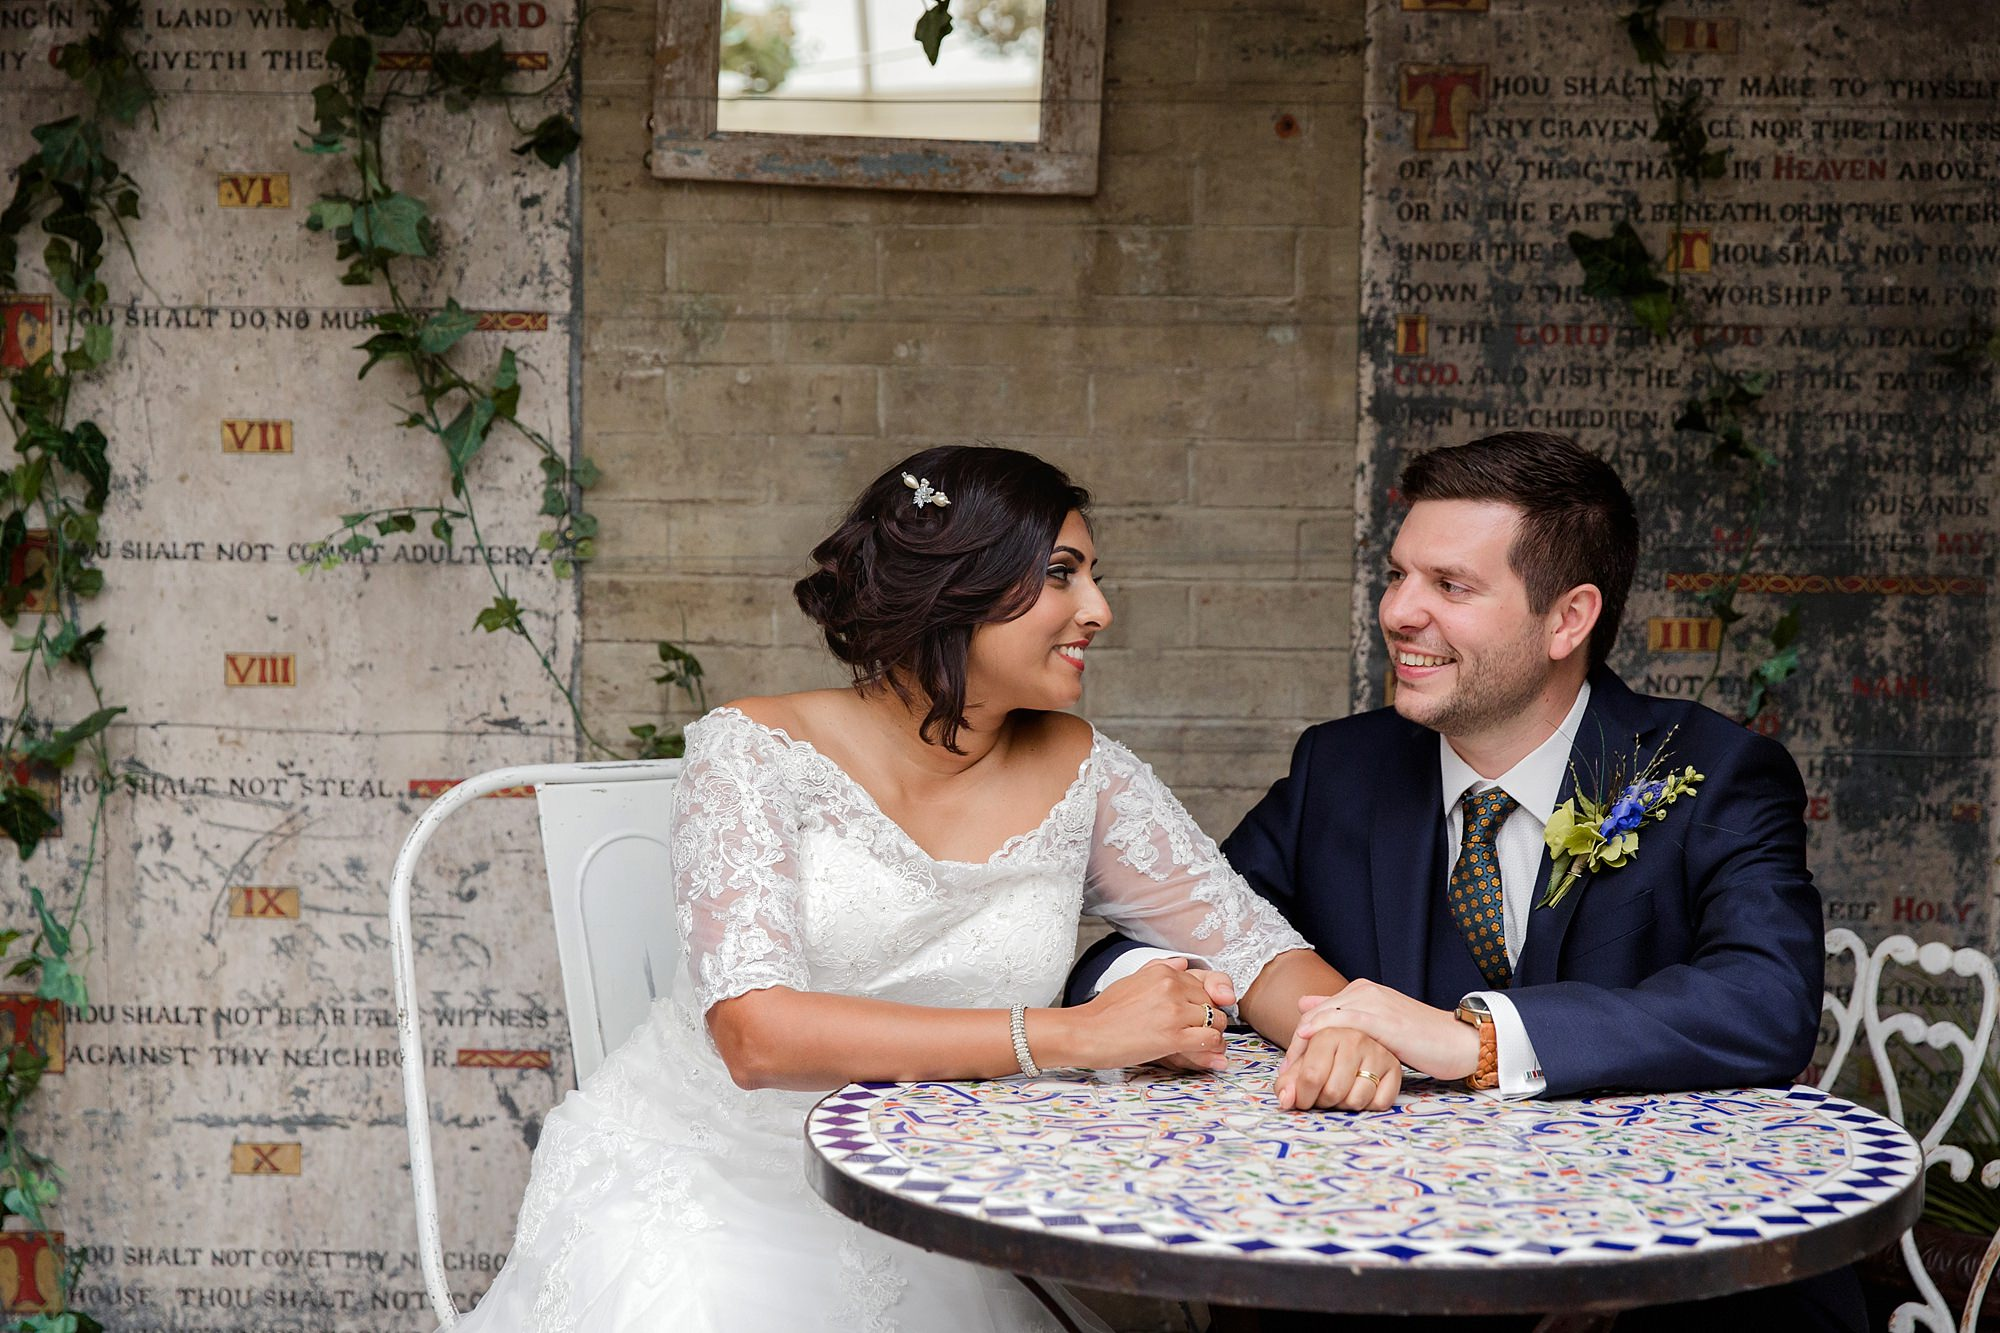 Paradise by way of Kensal Green wedding bride and groom talking together